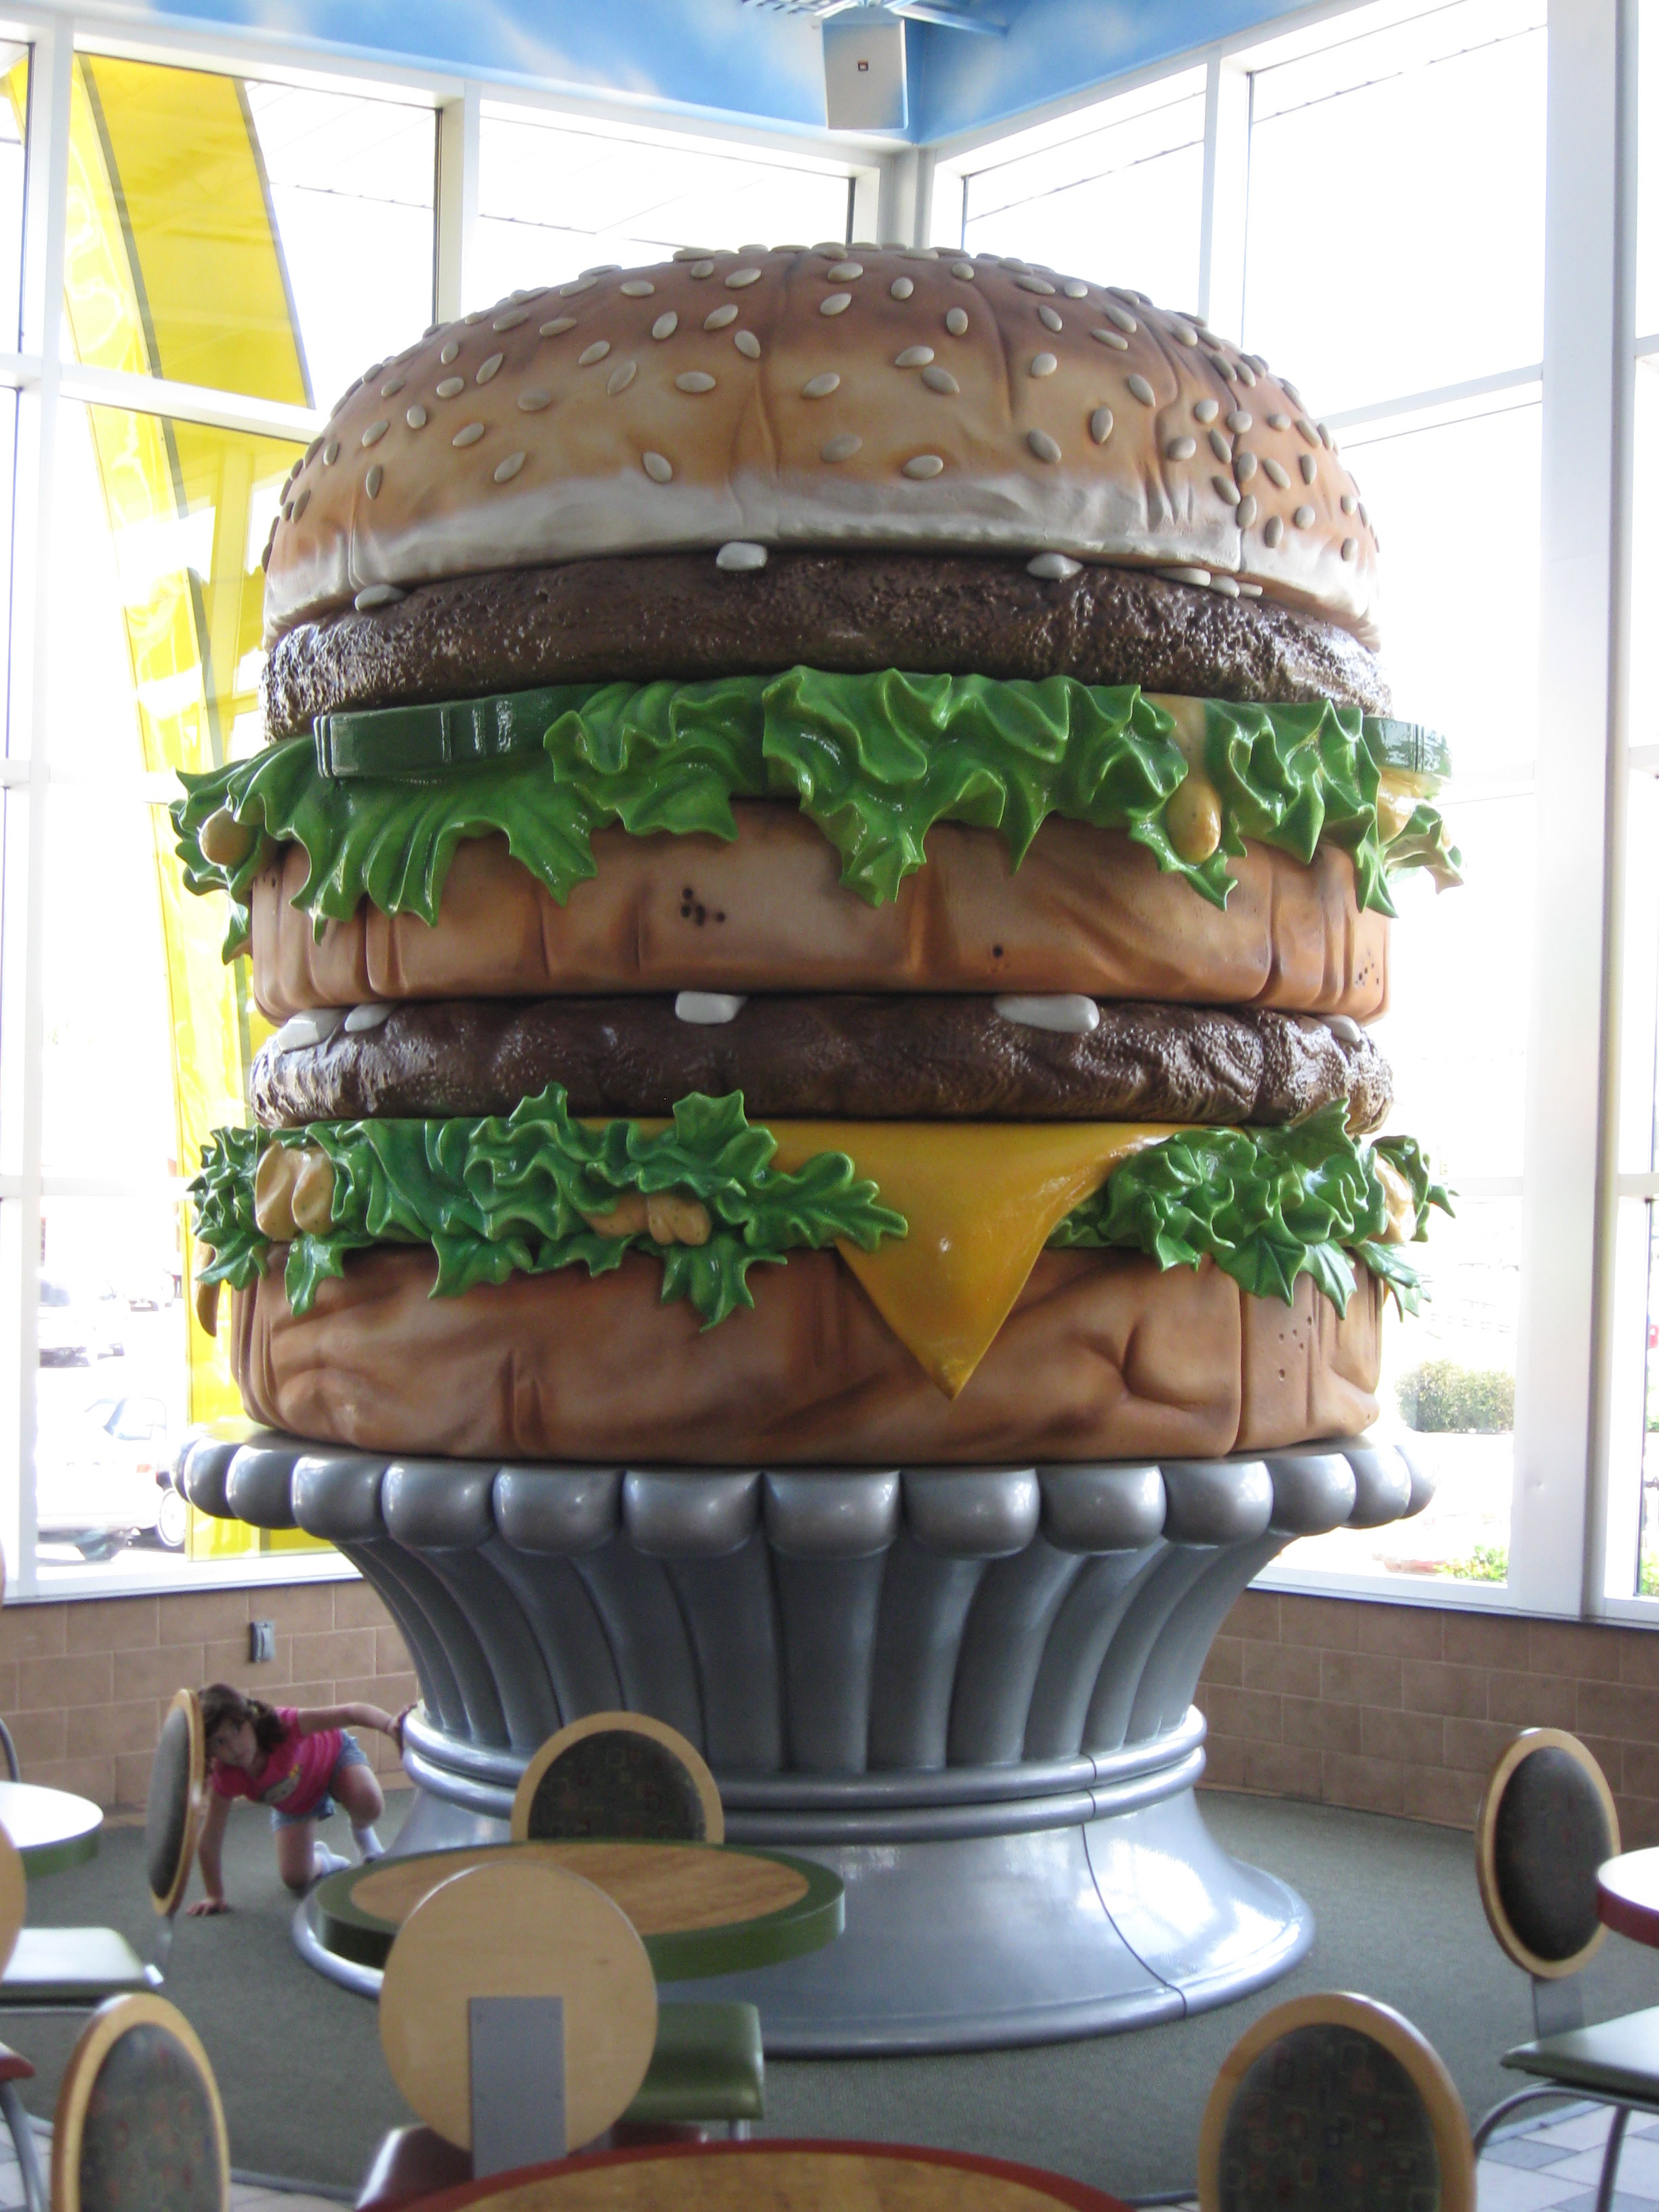 World's Largest Big Mac